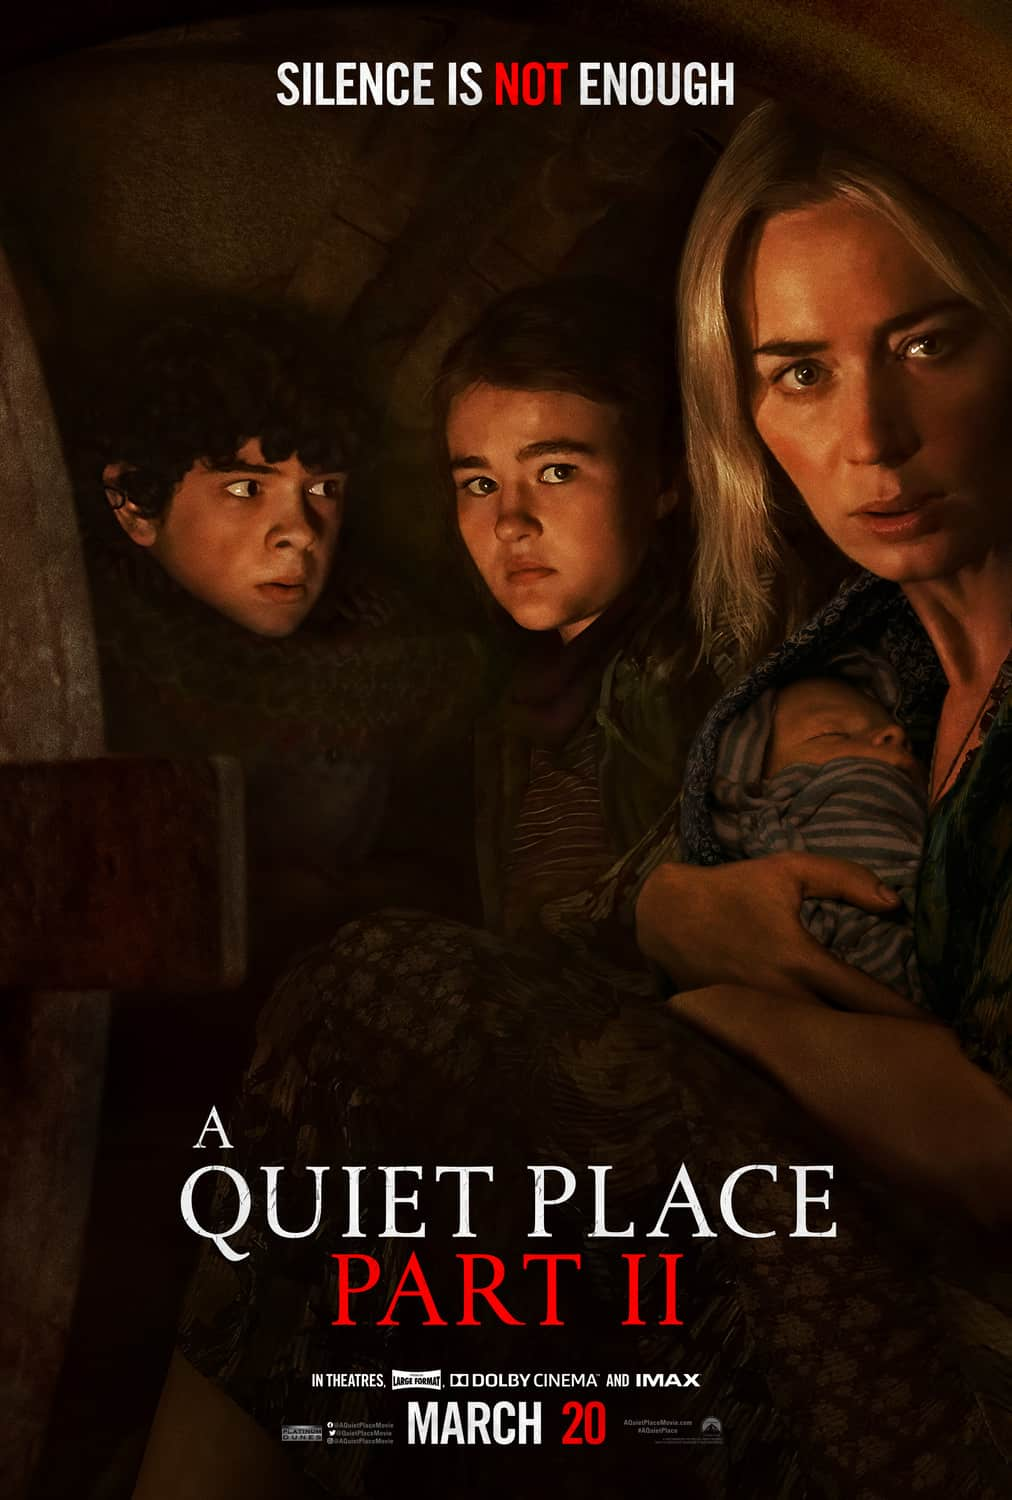 A QUIET PLACE & A QUIET PLACE PART II Double Feature On 3 ...